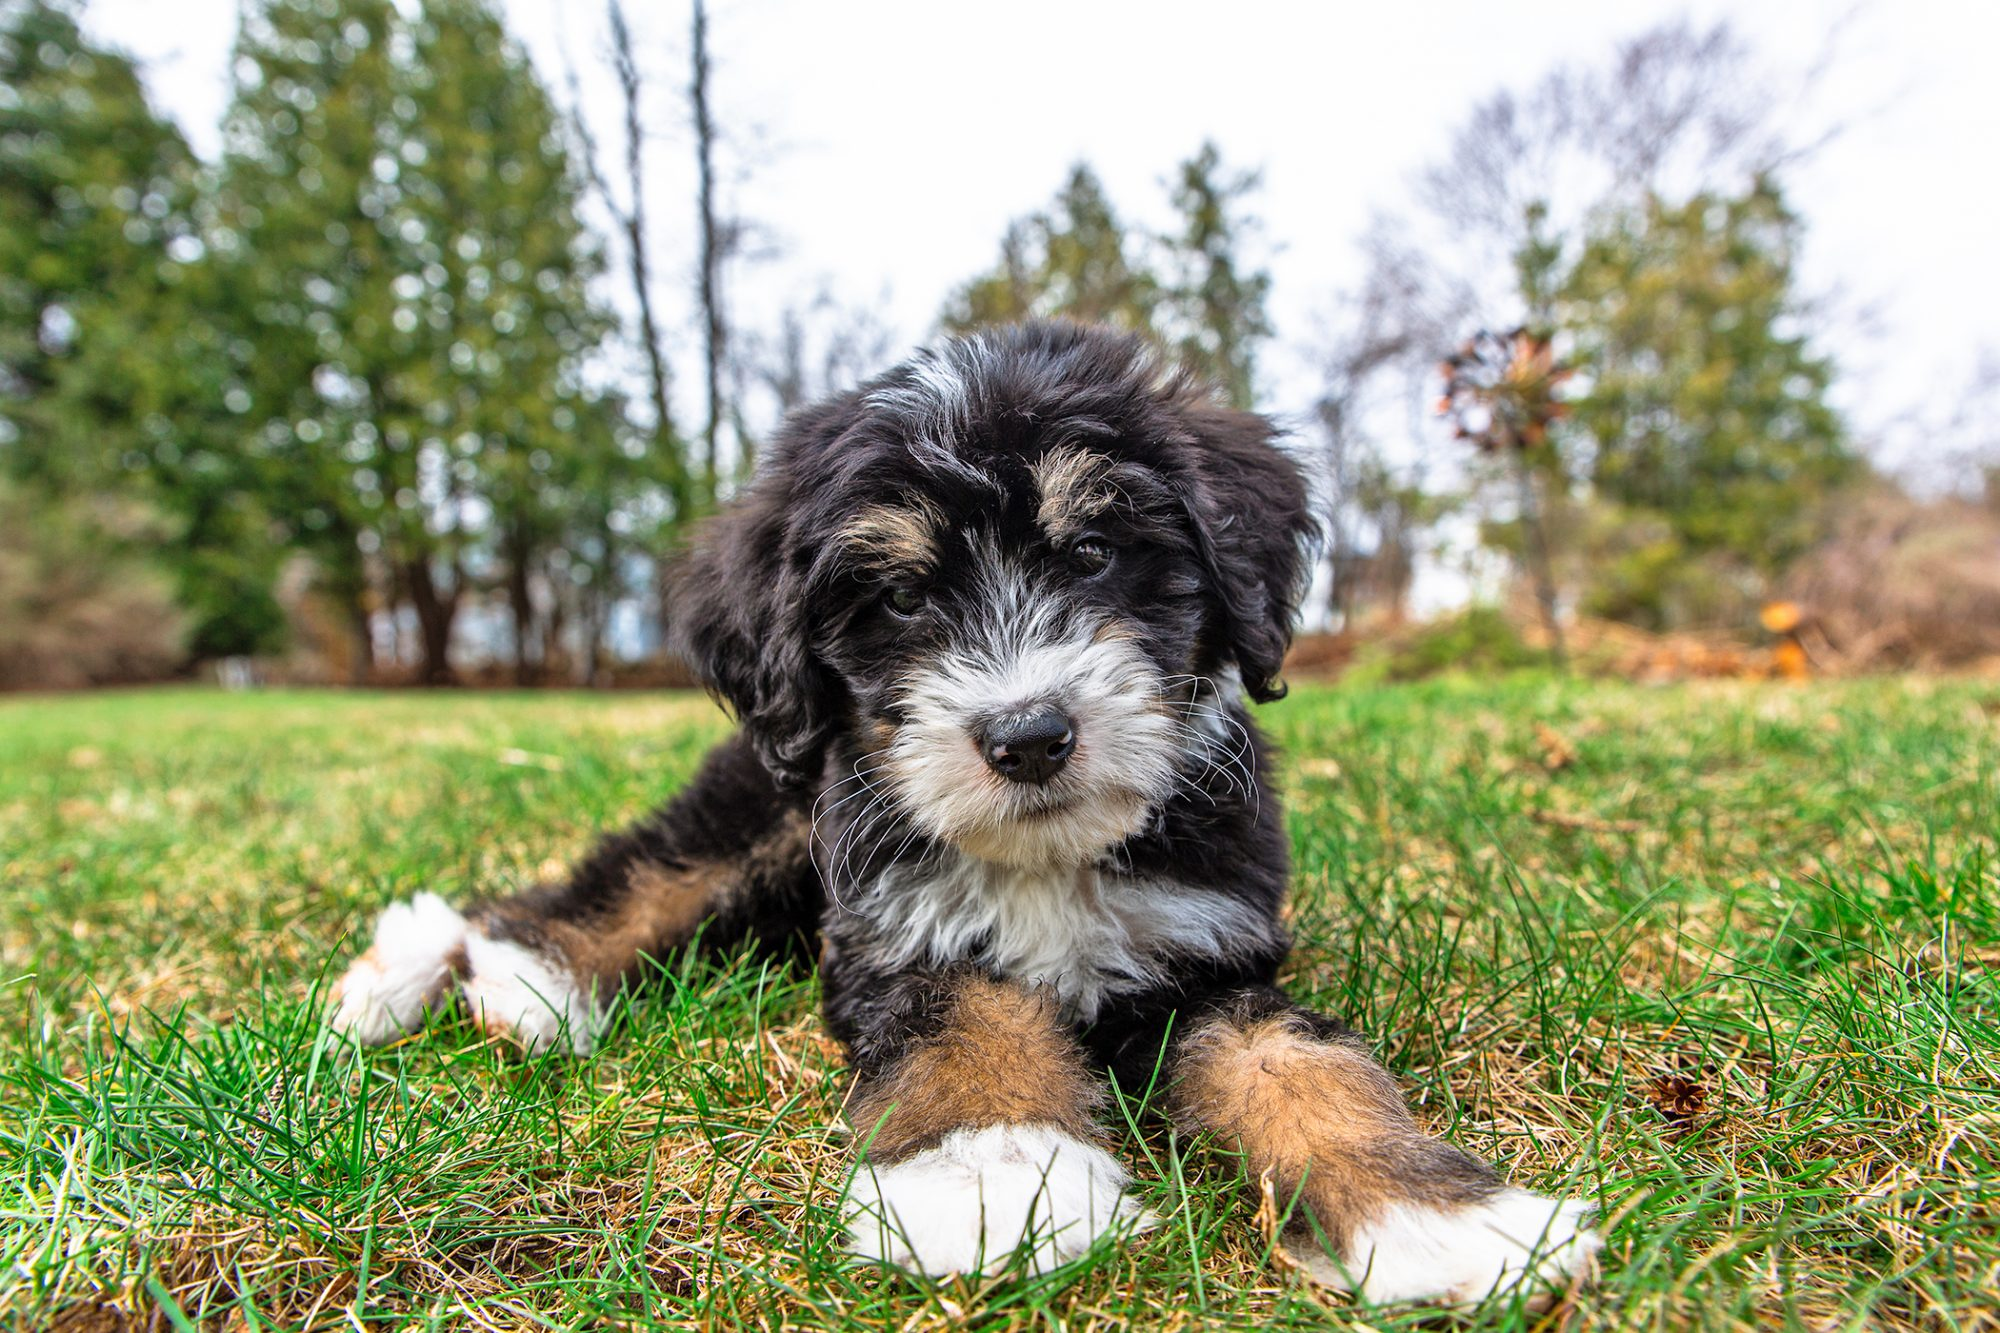 Black, tan, and white Bernedoodle on grass